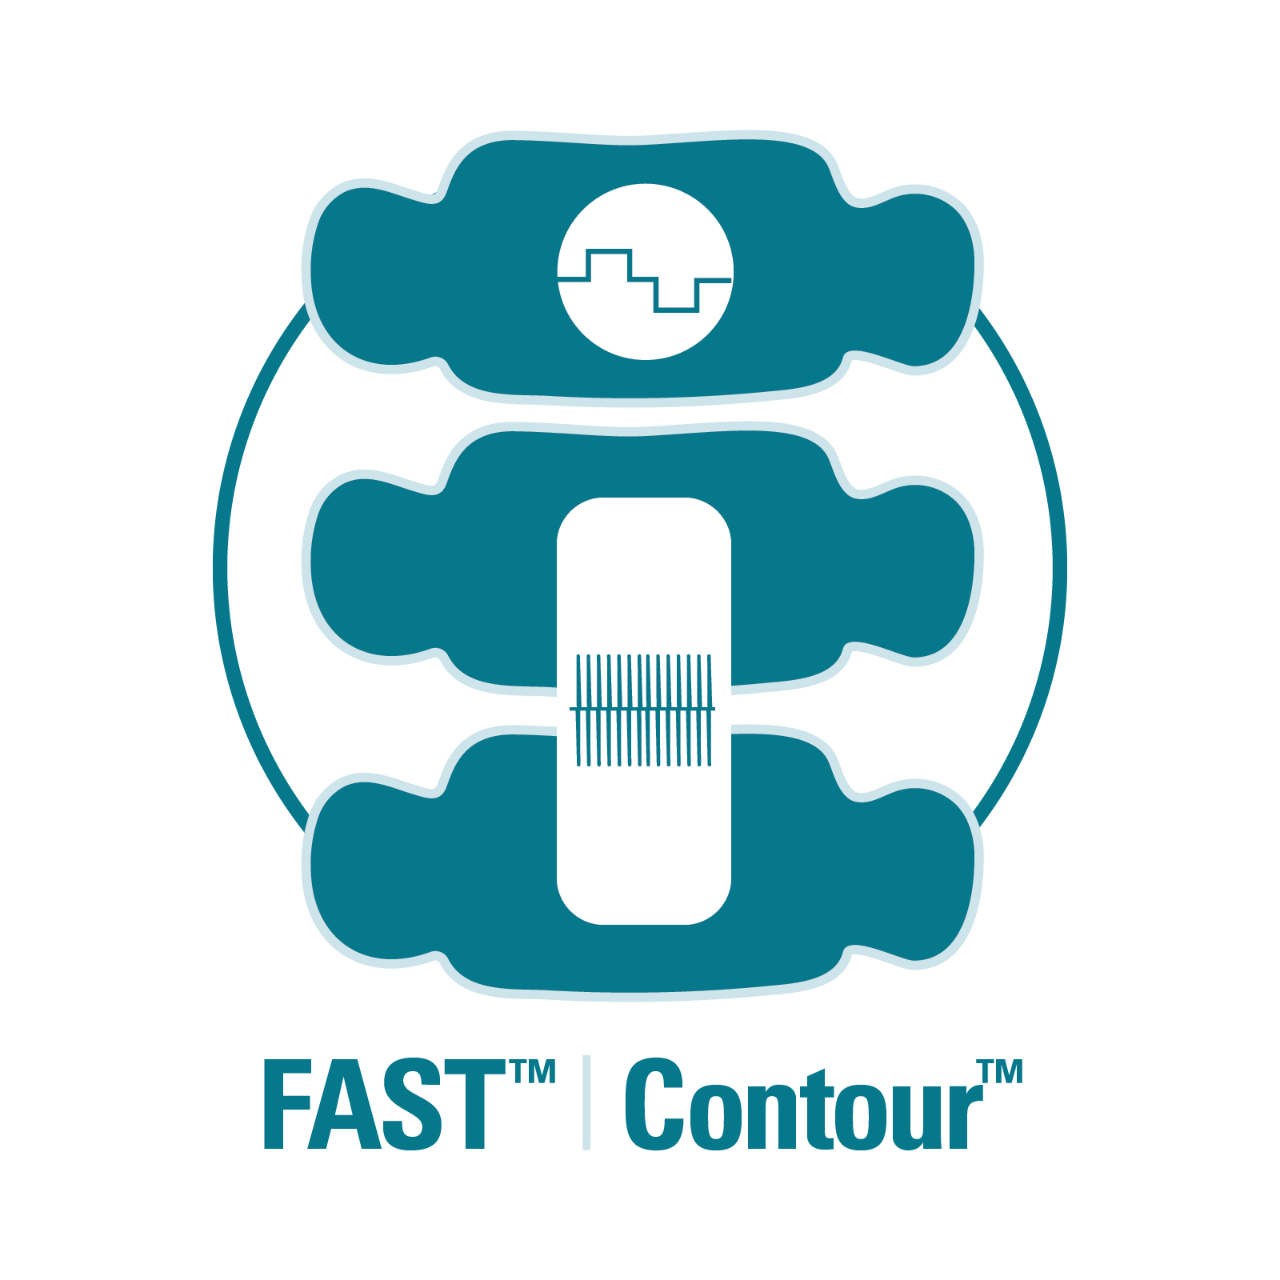 FAST and Contour therapy stimulate a spine simultaneously